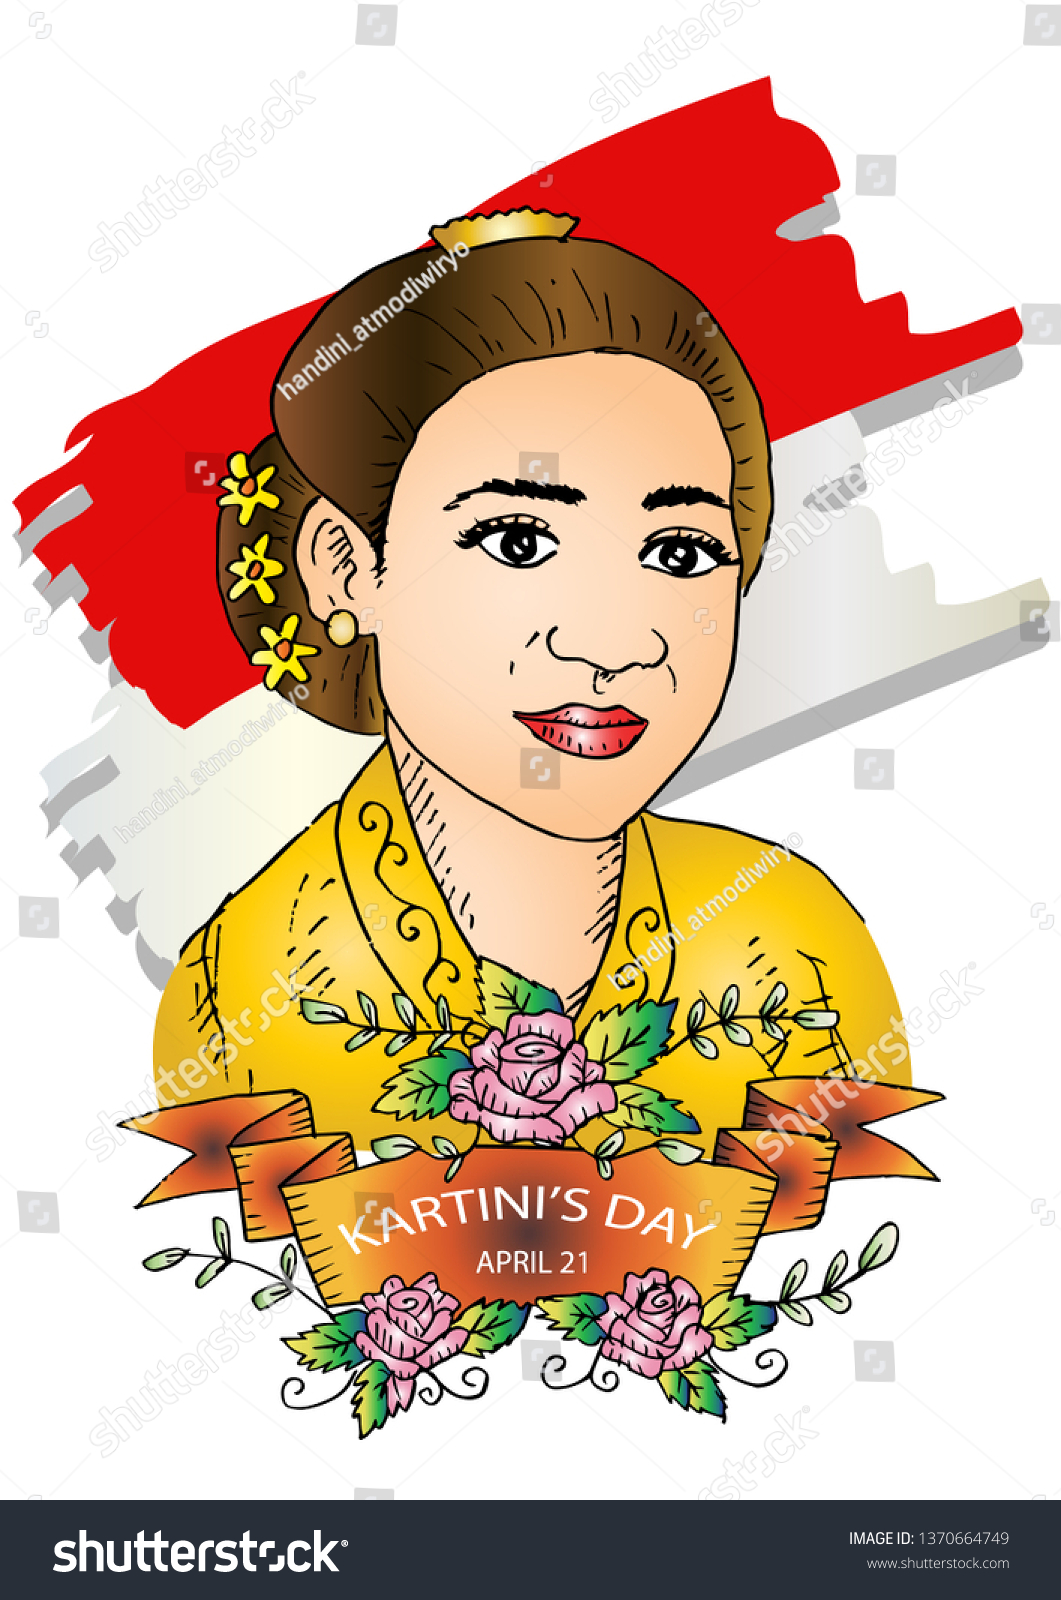 Ra Kartini Vector : kartini, vector, Kartini, Heroes, Women, Stock, Vector, (Royalty, Free), 1370664749